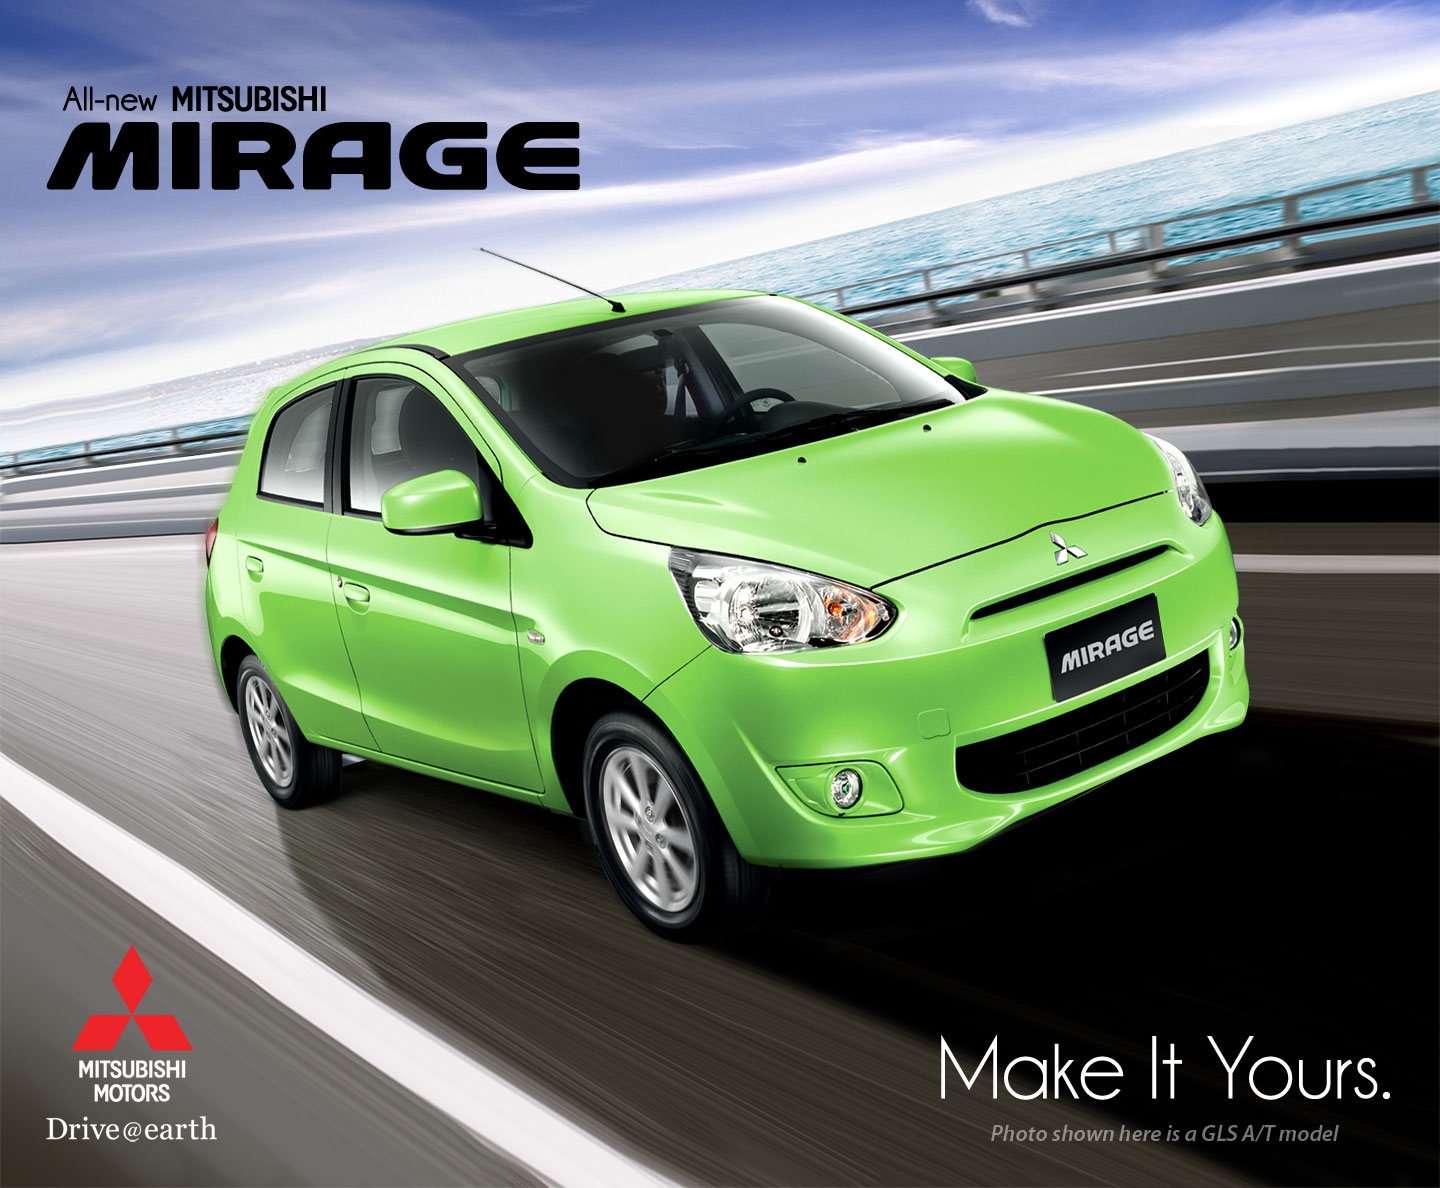 mitsubishi mirage wallpaper - mirageforum